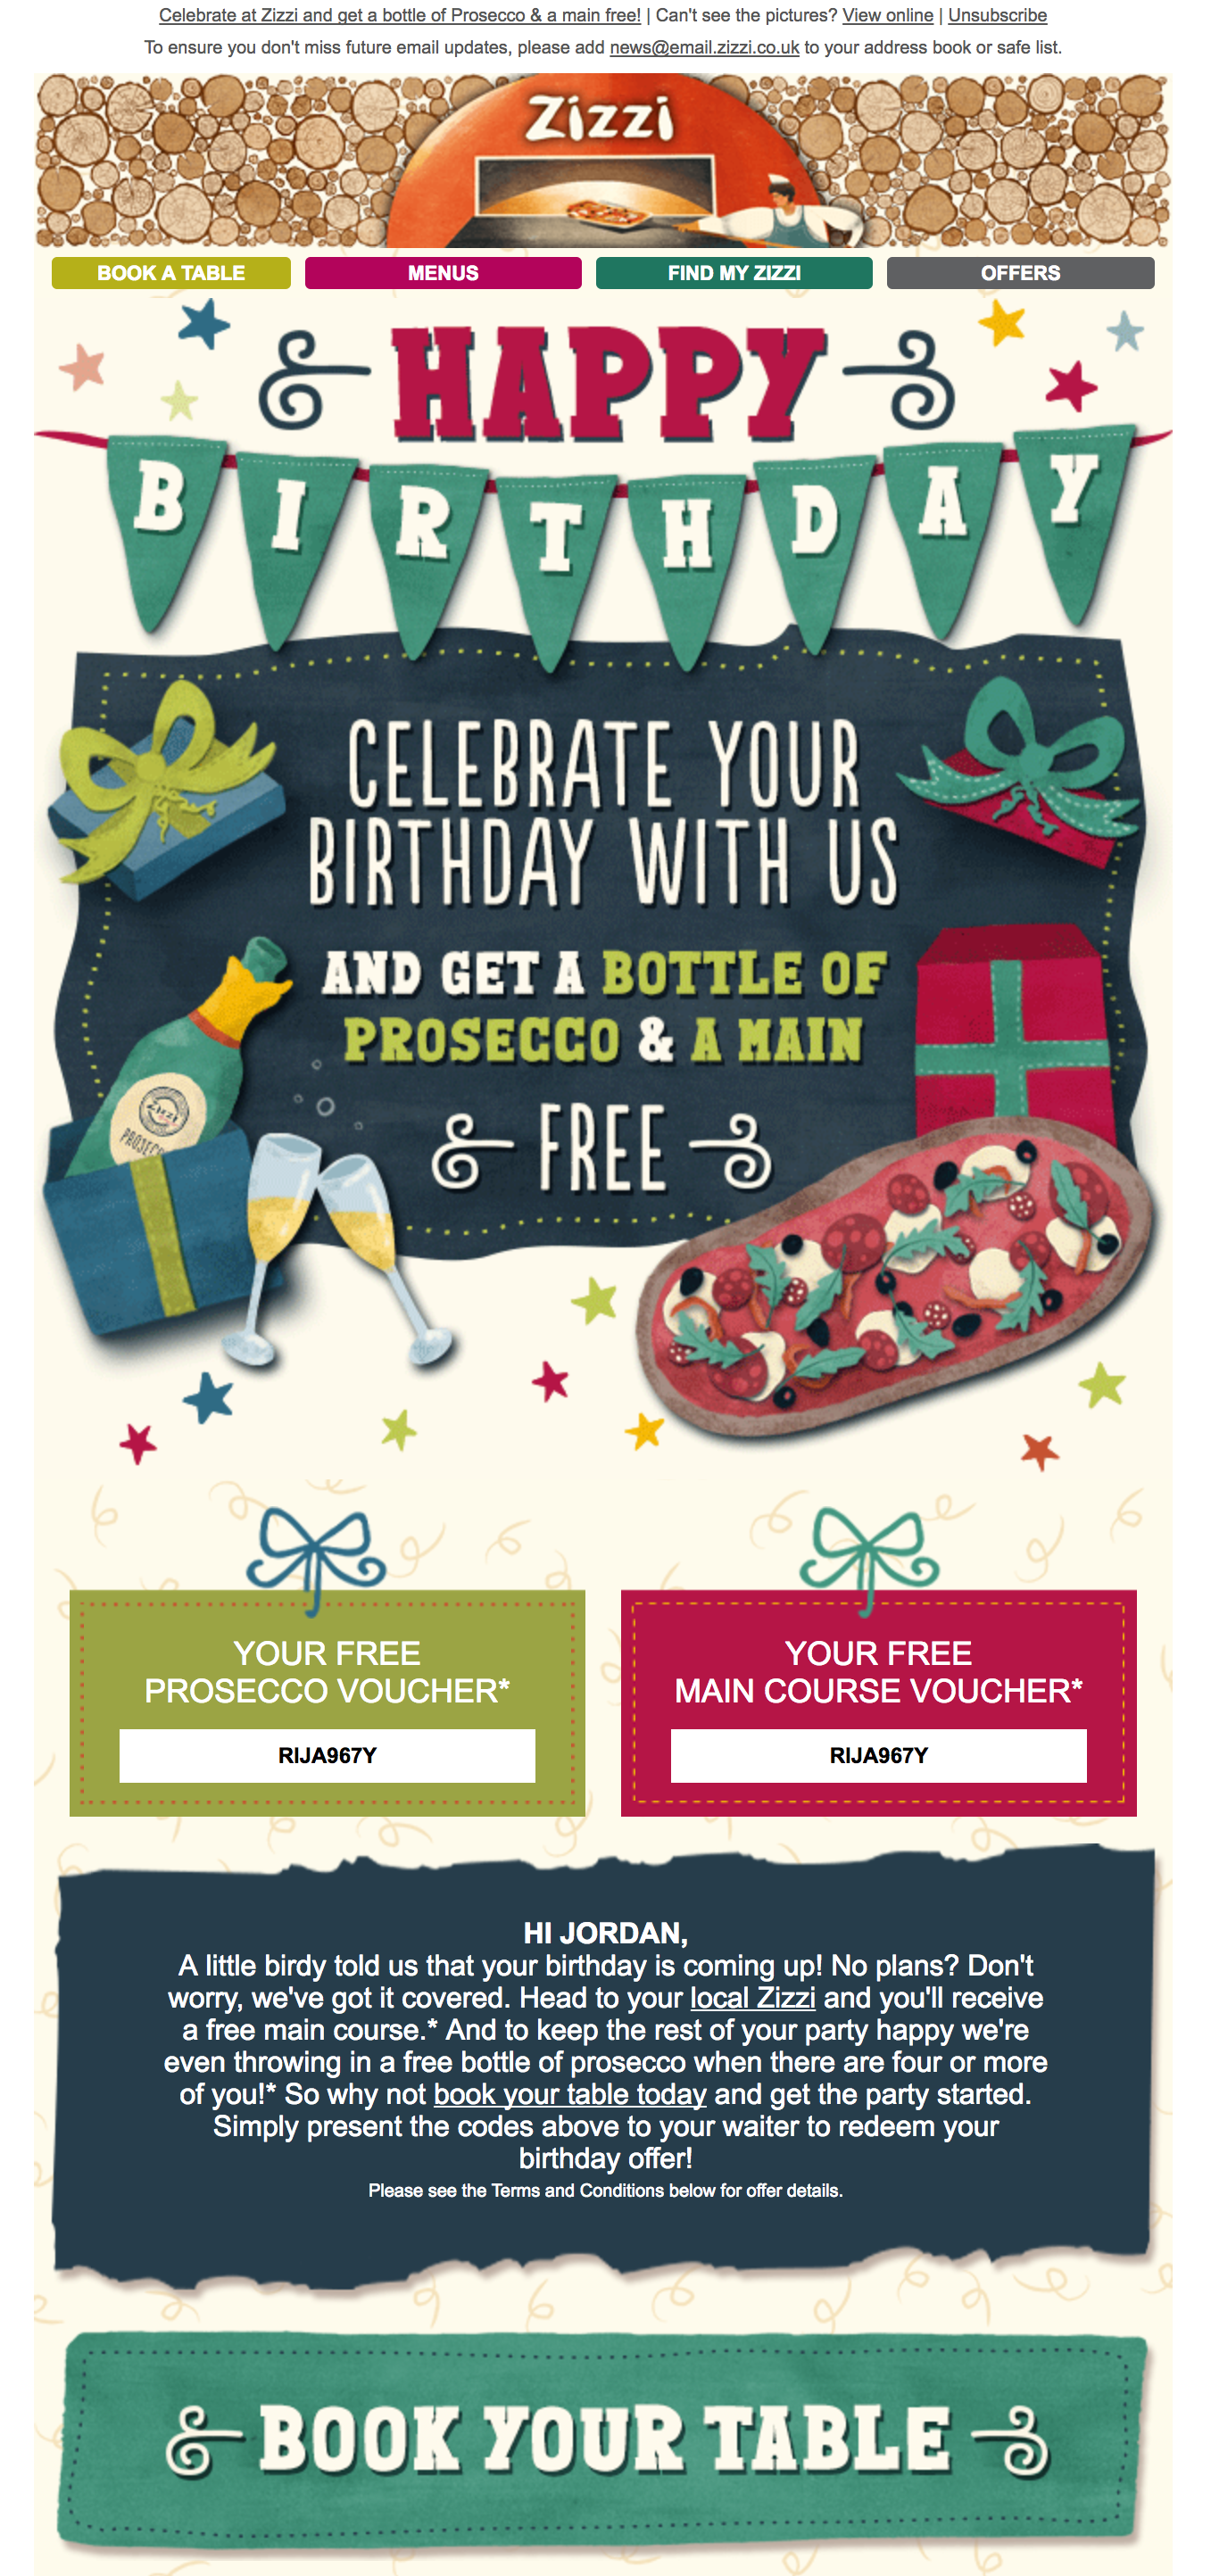 Birthday-email-Zizzis.png